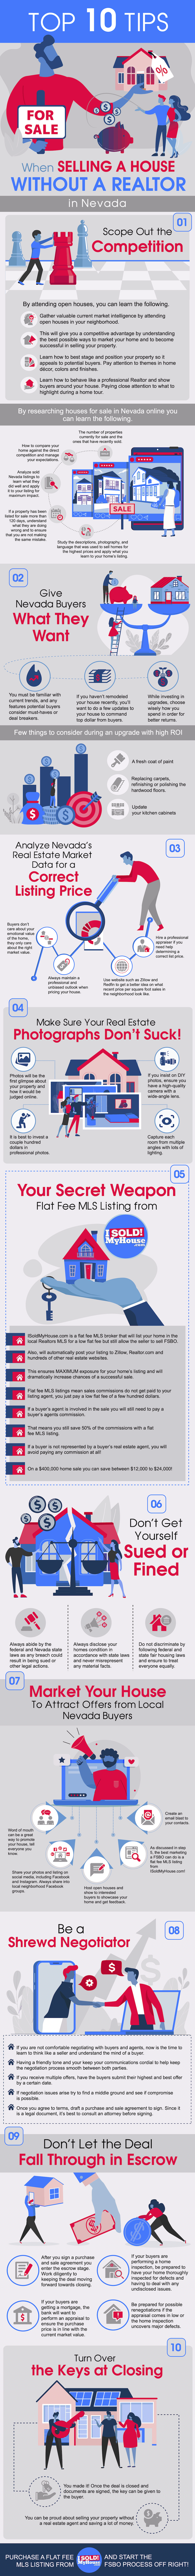 infographic of the 10 steps to sell a house in nevada without an agent